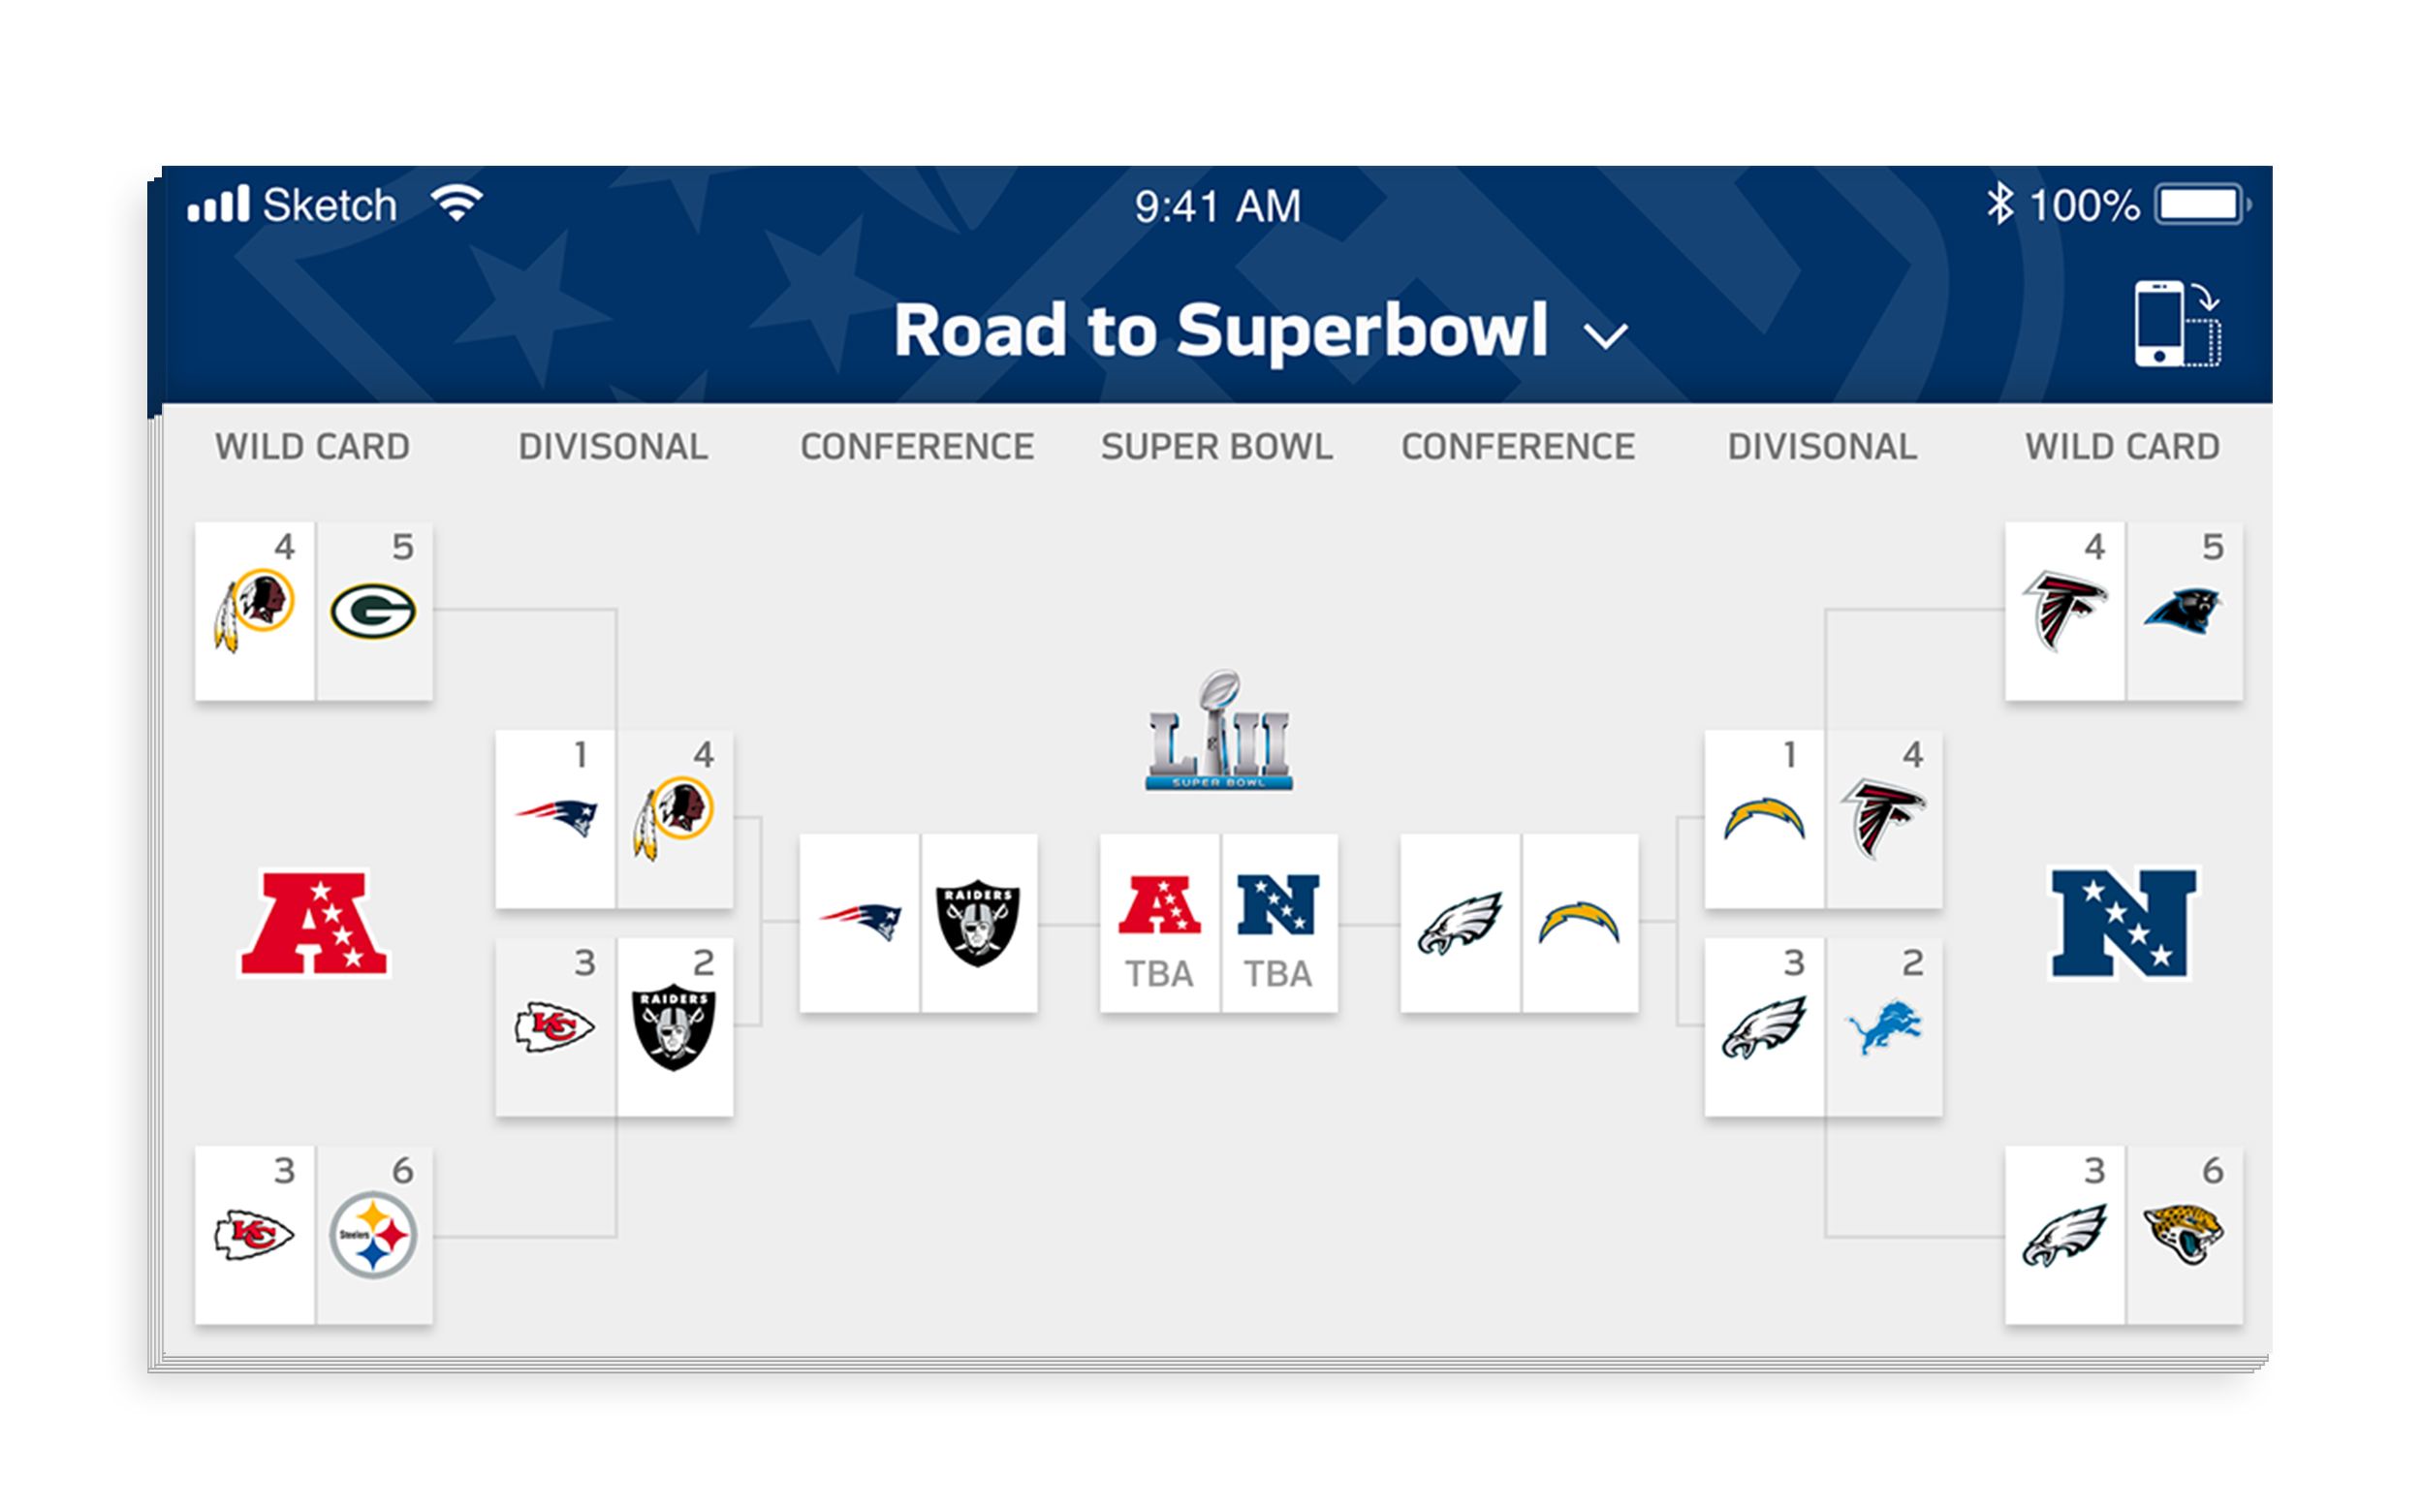 - After Wild Card Weekend, users can see which teams will be facing seeds one and two of the divisional playoffs.The highest seed always plays the lowest seed, so sometimes the bracket will do some crisscrossing.